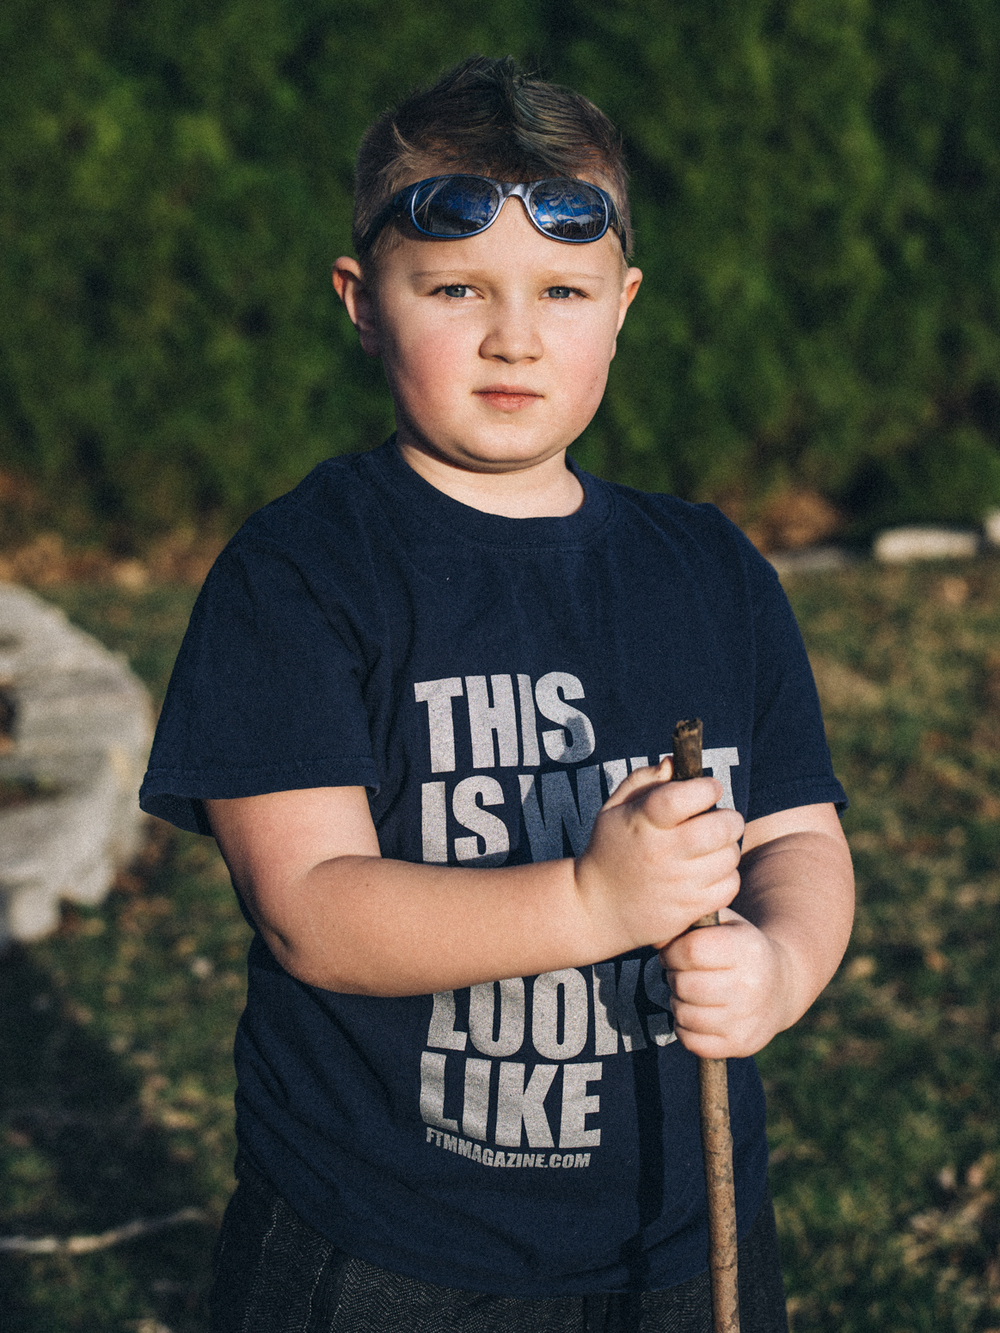 Jake, 8, transgender boy, central, Illinois